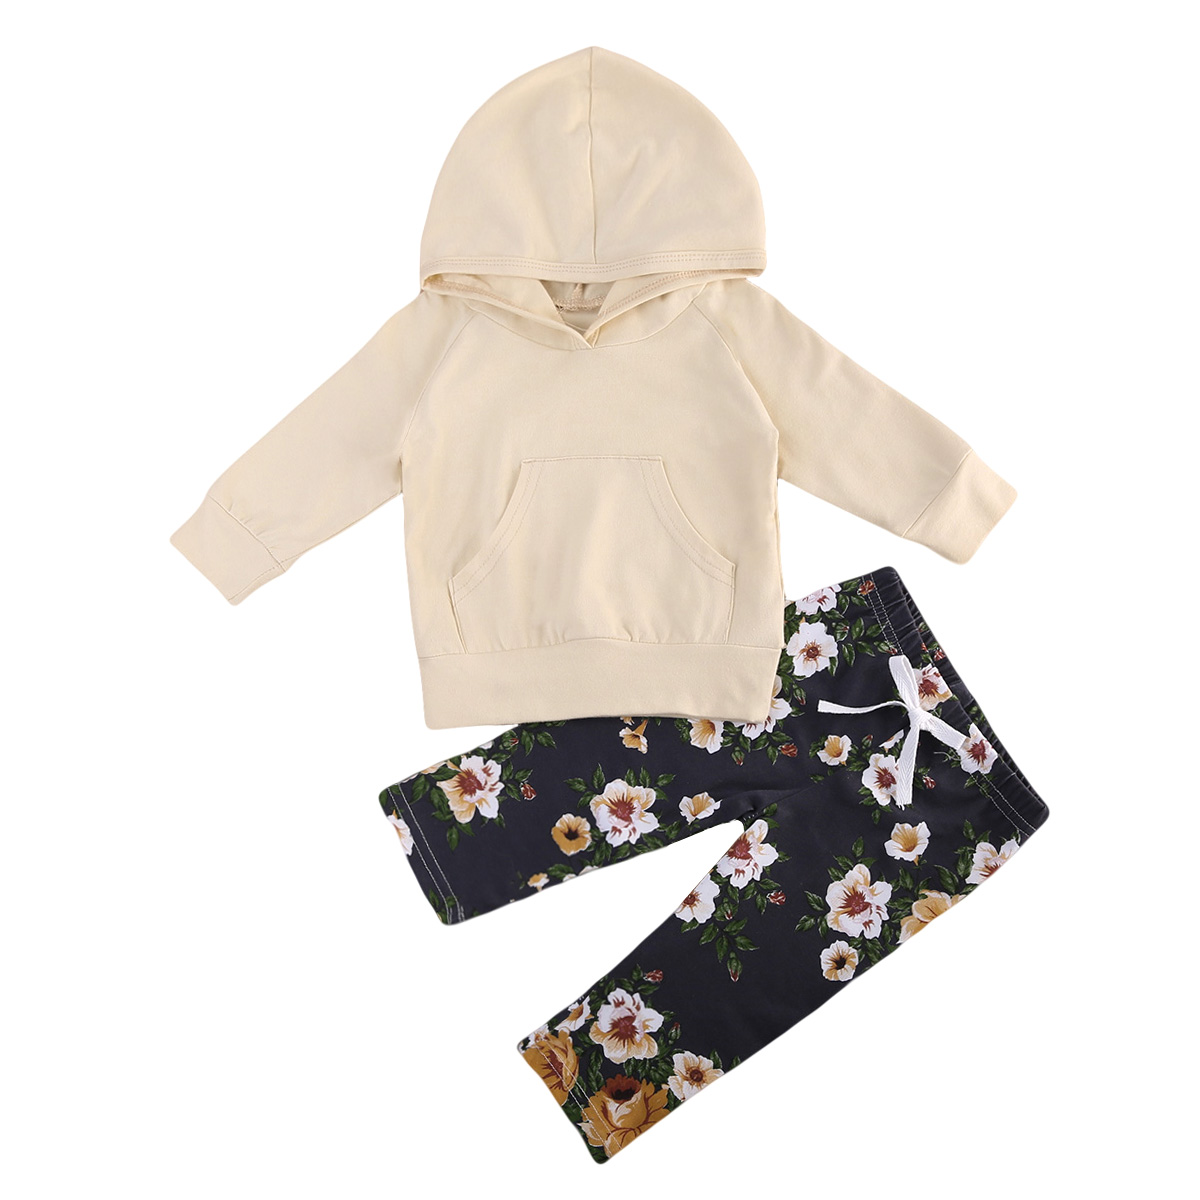 0-18M Newborn Baby Kids Girls Clothes Long Sleeve Hooded Tops Floral Long Pants Outfits Set 2018 Spring Autumn